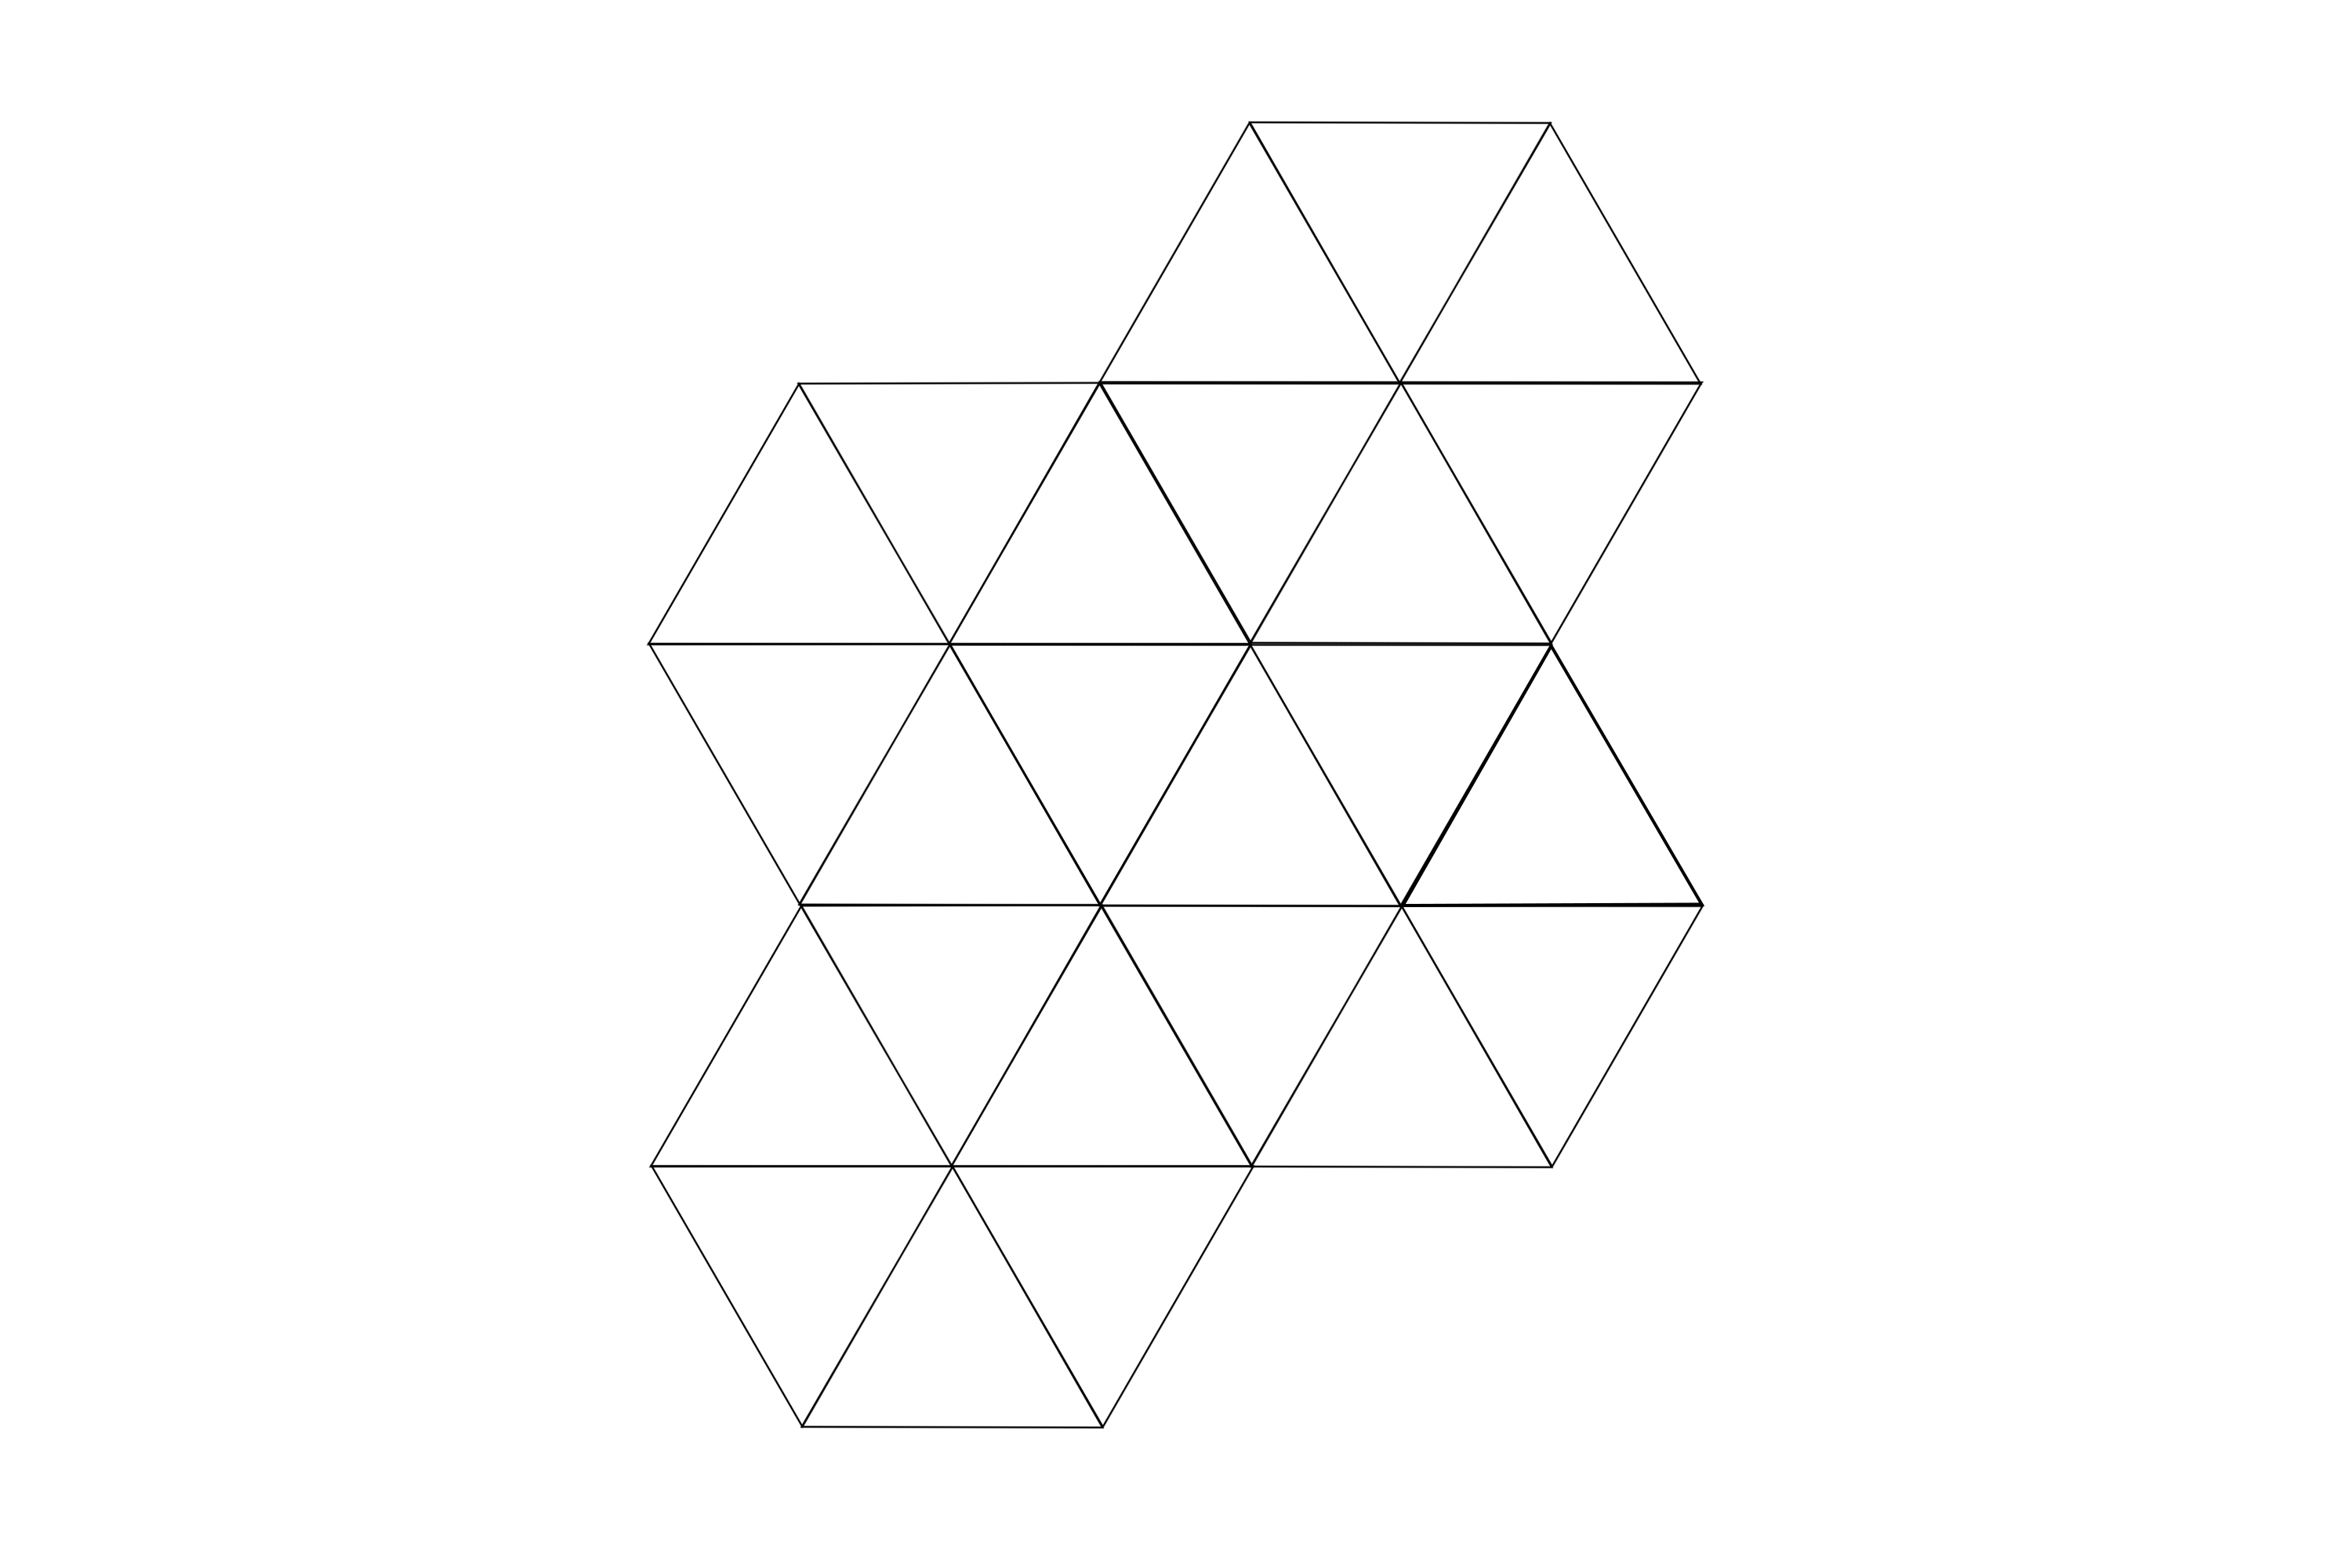 Write each internal angle size of this tessellation of equilateral triangle